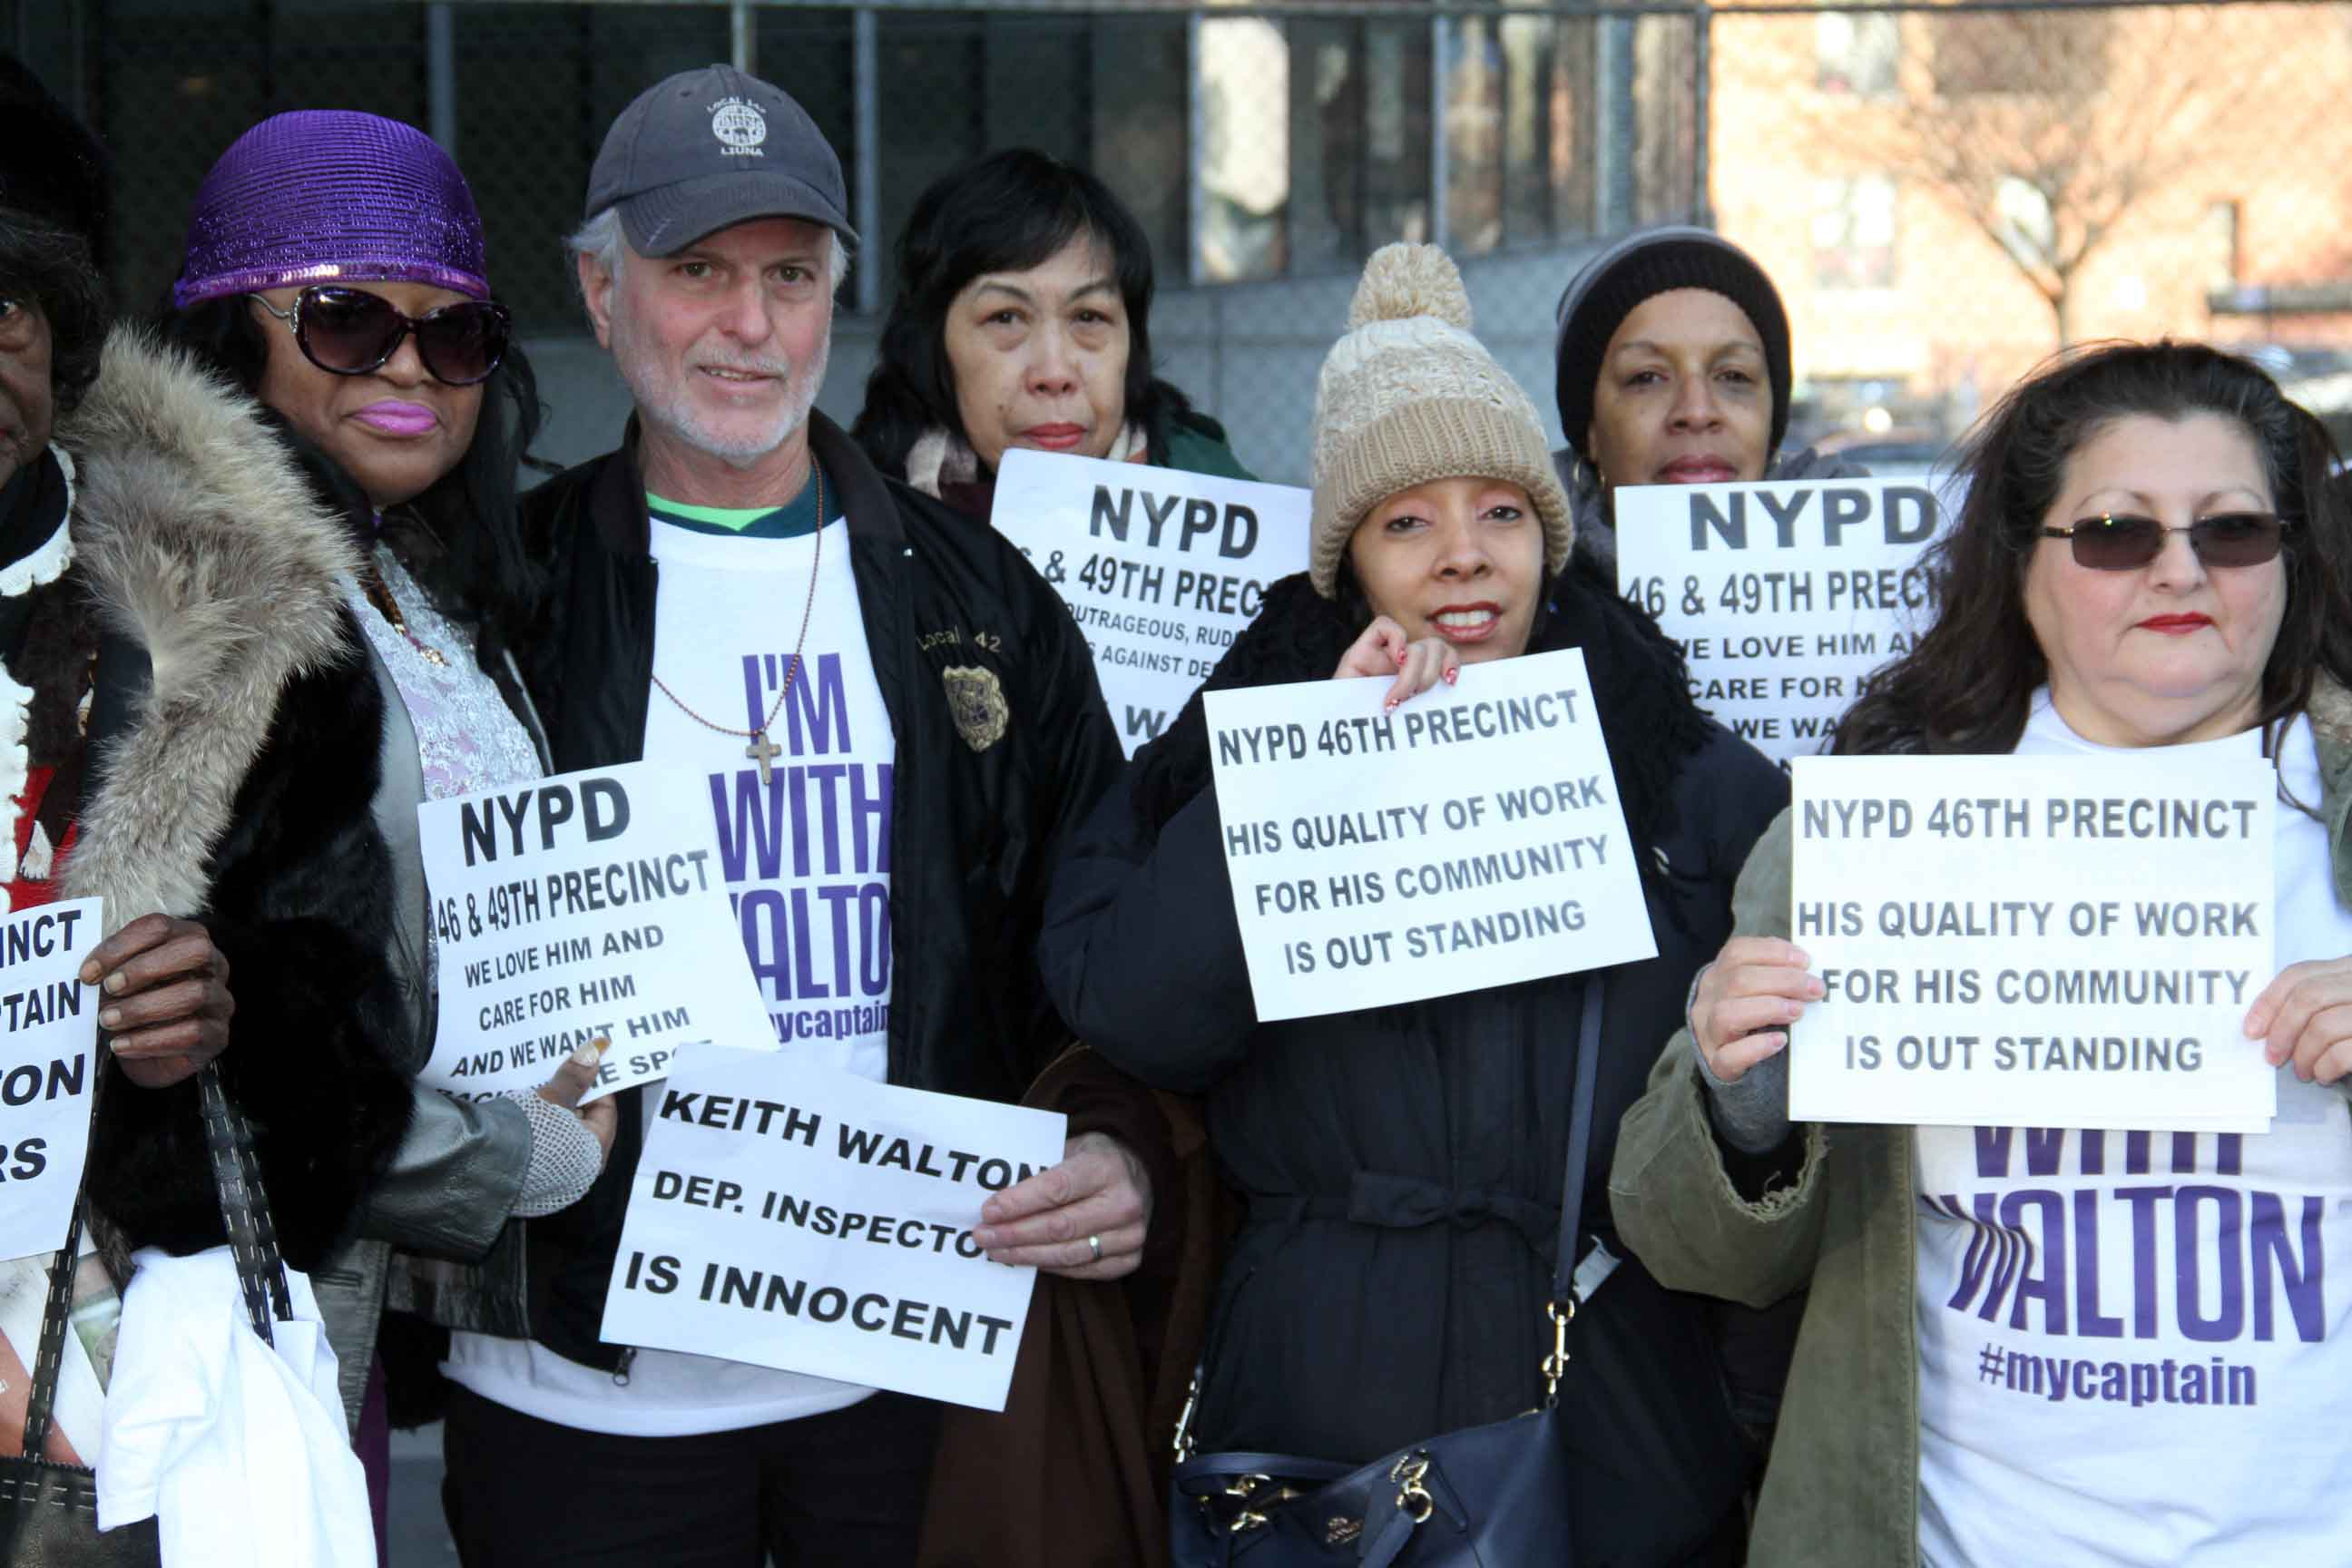 Supporters vow to attend every court date in support of Deputy Inspector Keith Walton